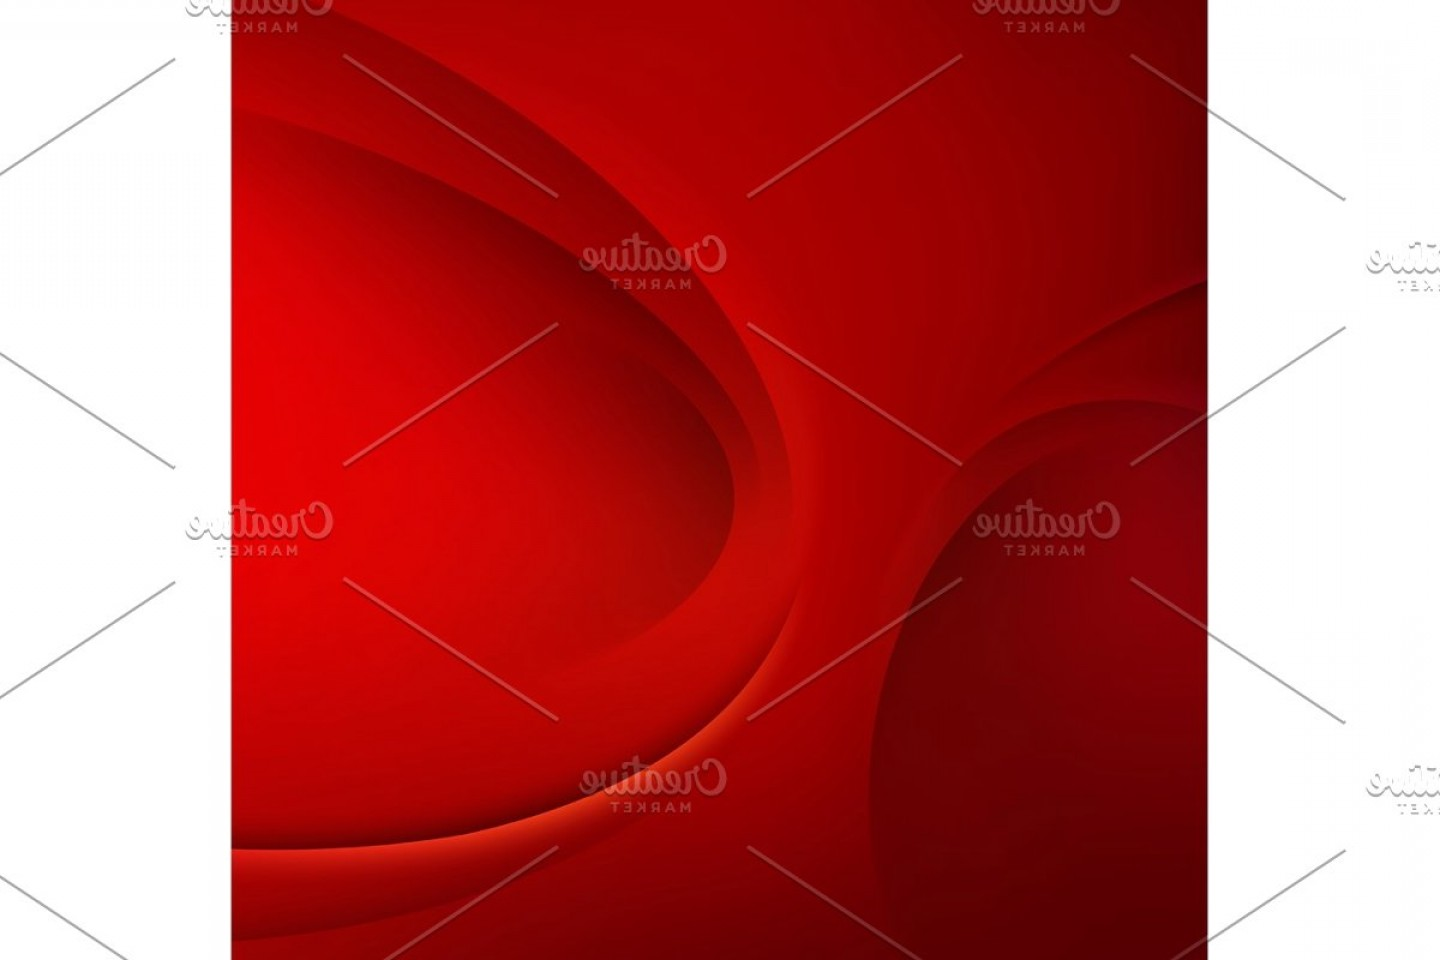 YouTube RedVector Real Life: Red Vector Template Abstract Background With Curves Lines And Shadow